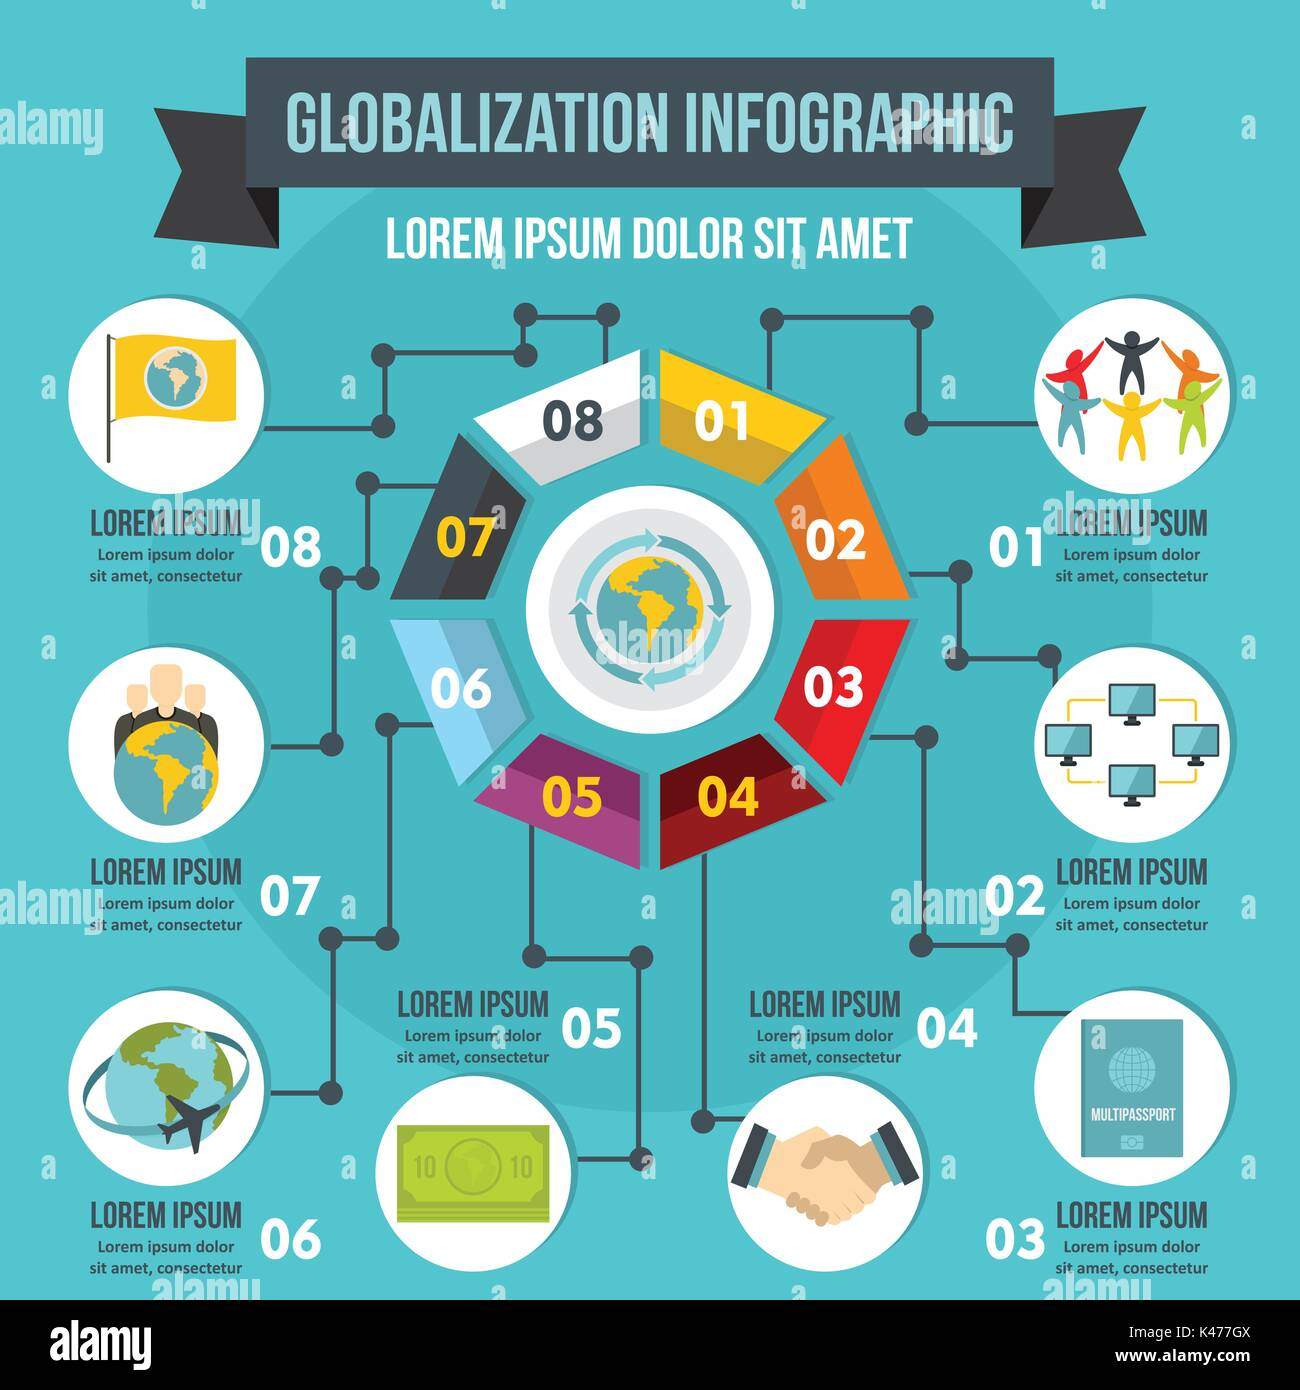 Globalization infographic concept, flat style - Stock Image